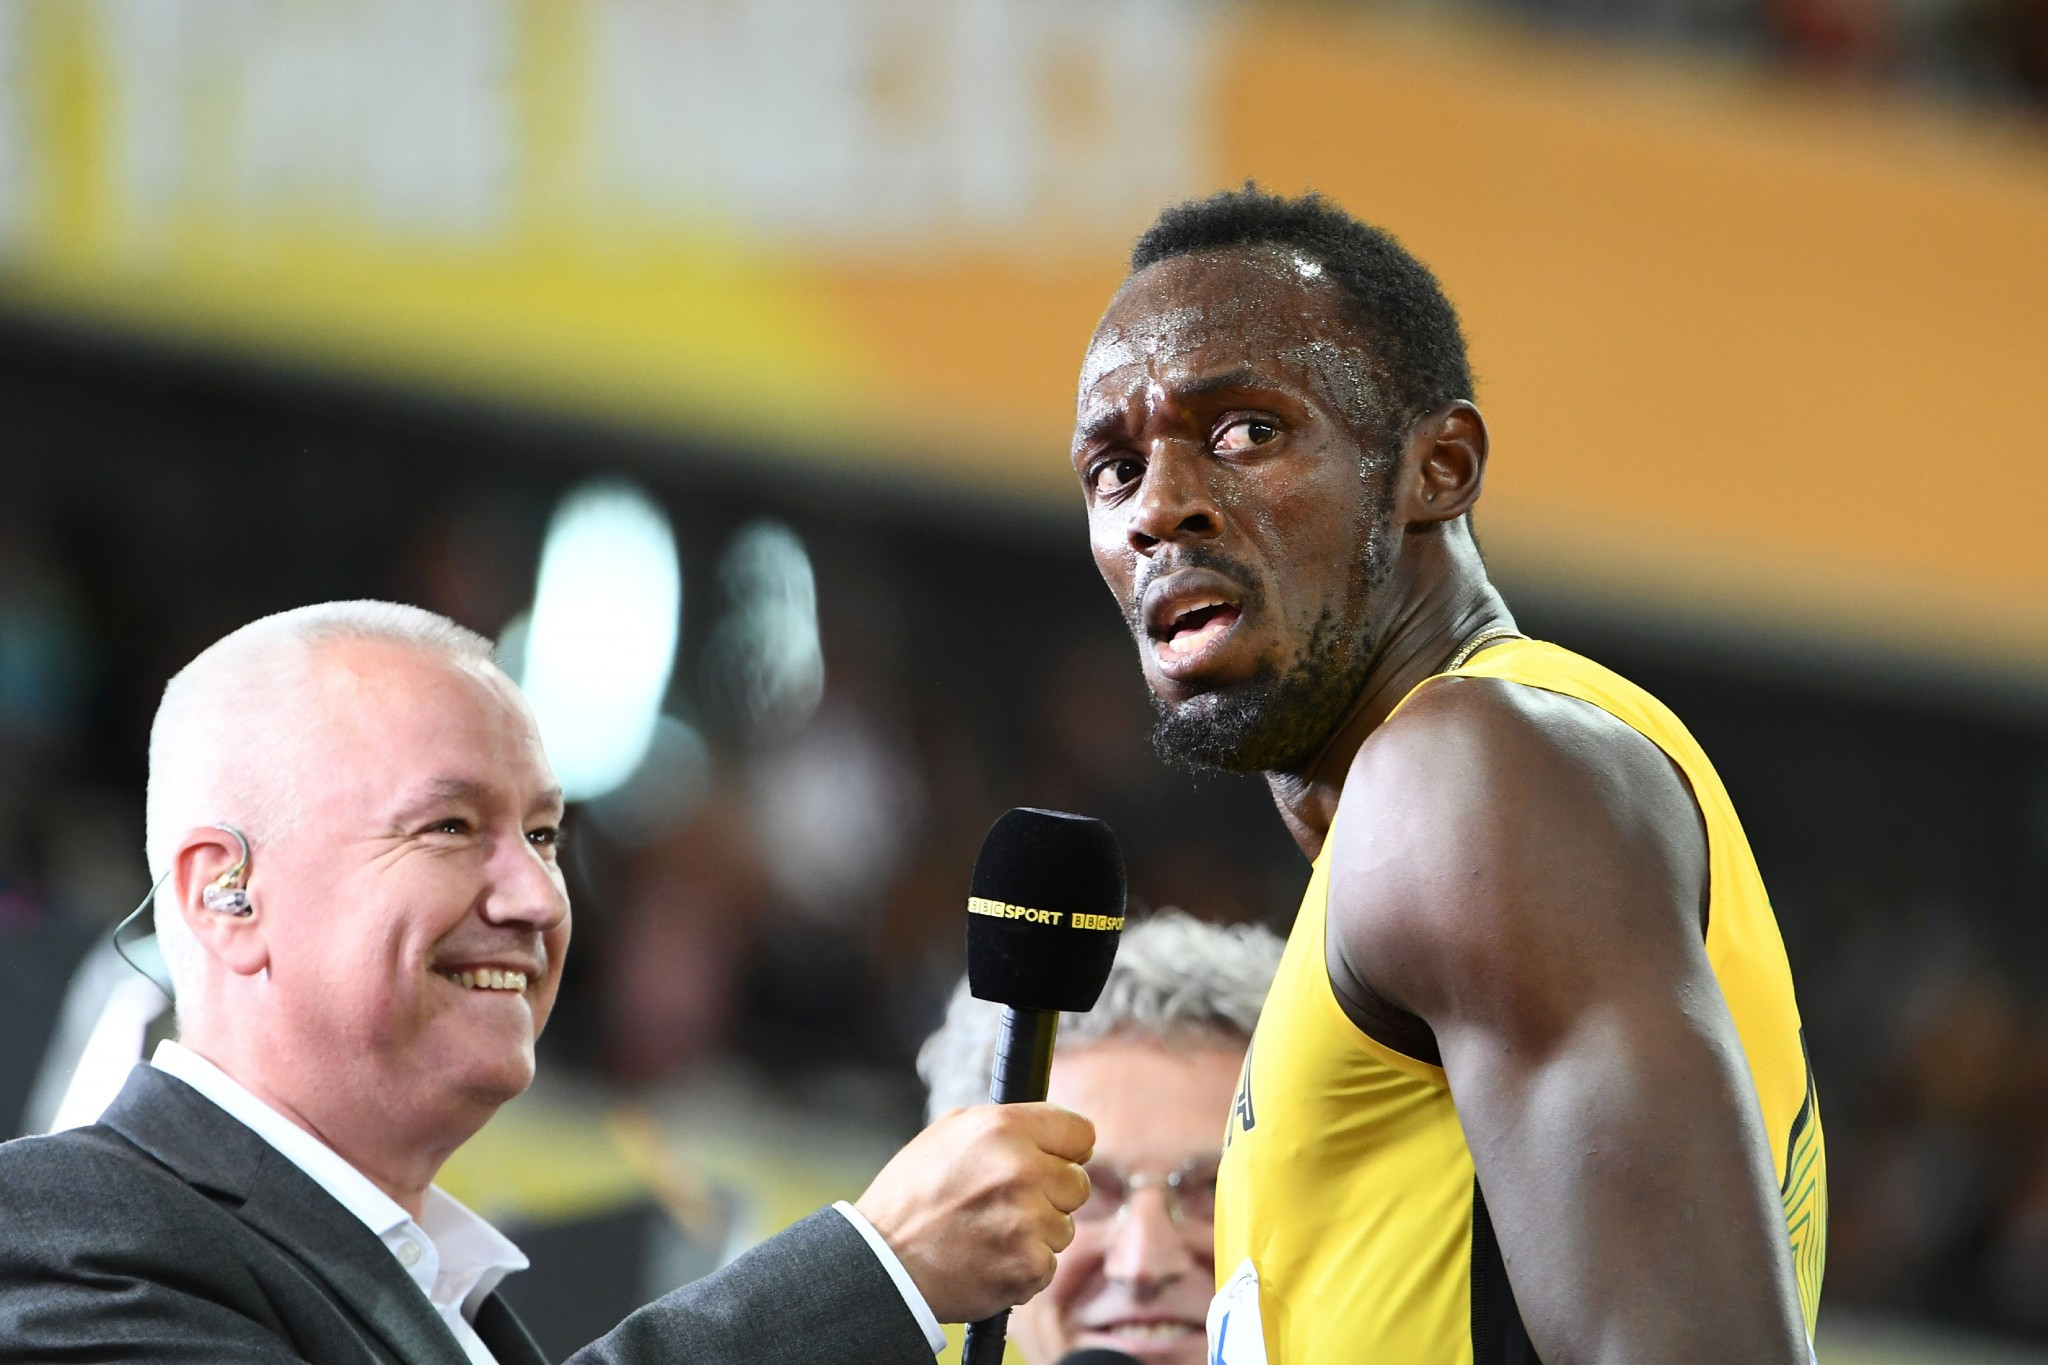 Usain Bolt was not thrilled with the manner of his 100m first round victory in London ©Getty Images